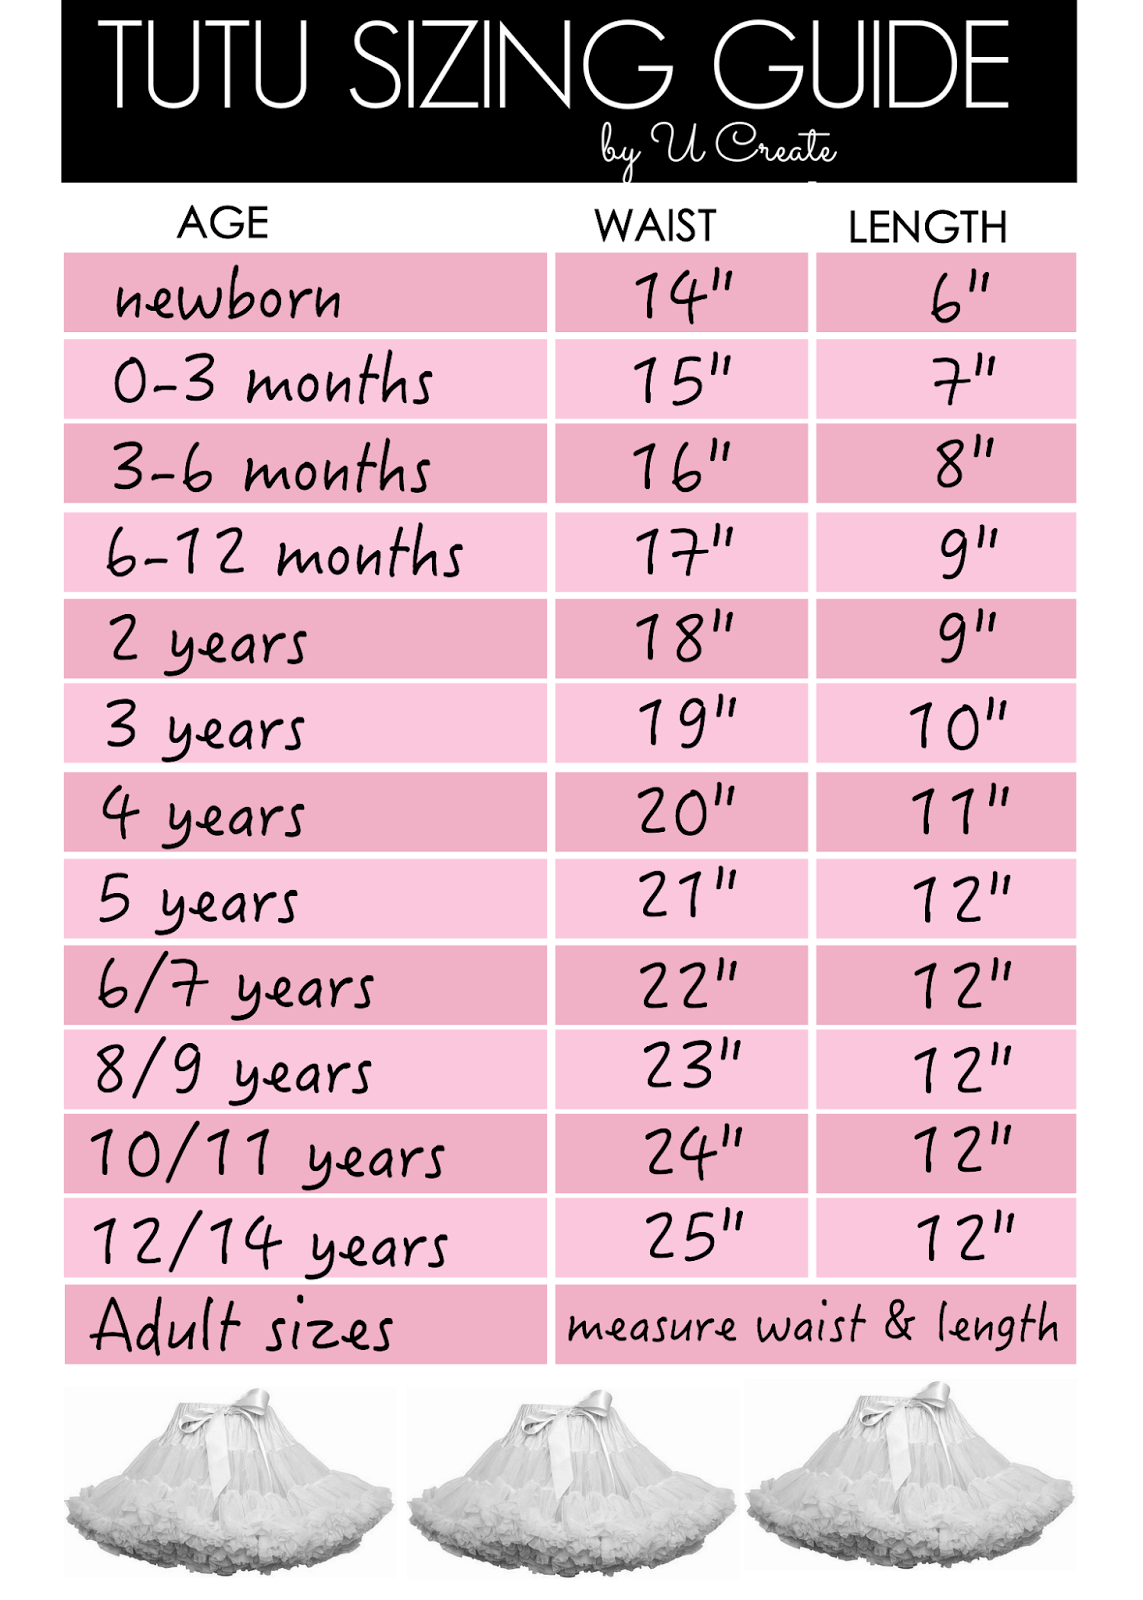 tutu sizing guide chart by u create sewing tips tricks and charts pinterest diy tutu. Black Bedroom Furniture Sets. Home Design Ideas